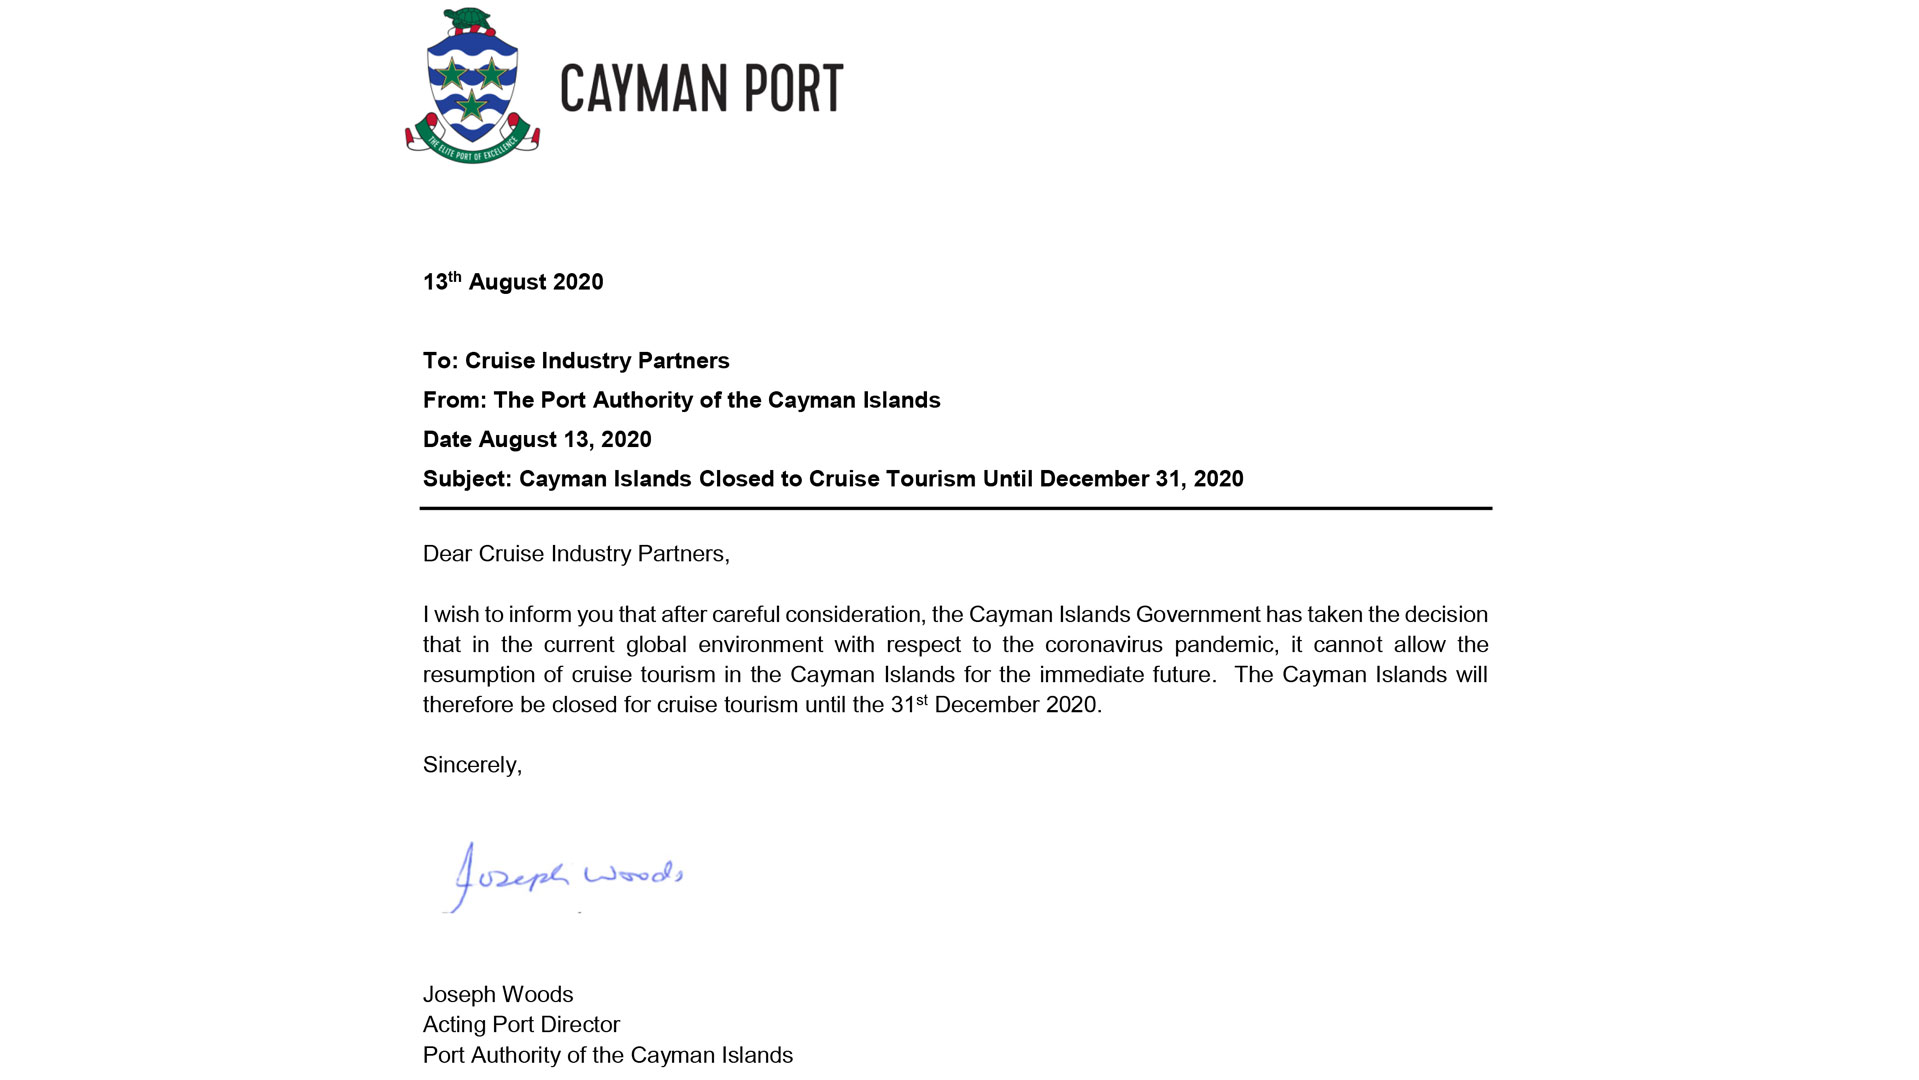 Grand Cayman Port Extended Cruise Closure Notice20200813